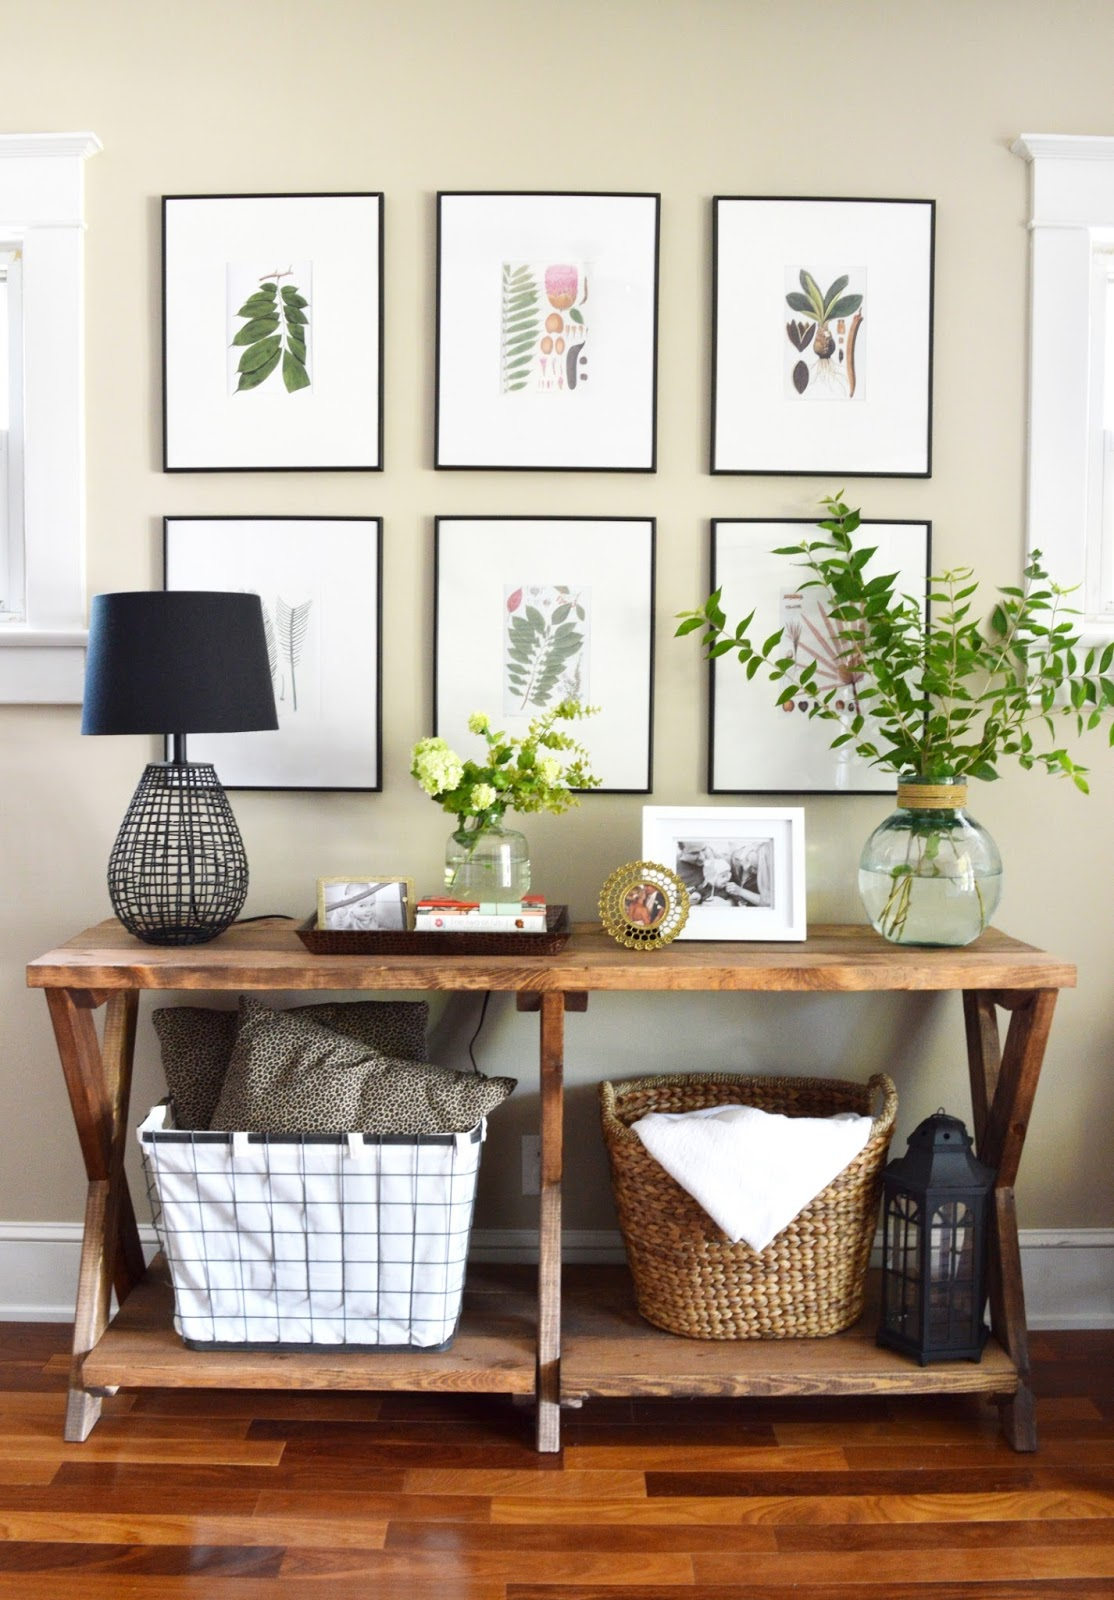 11 tips for styling your entryway table Entry table design ideas